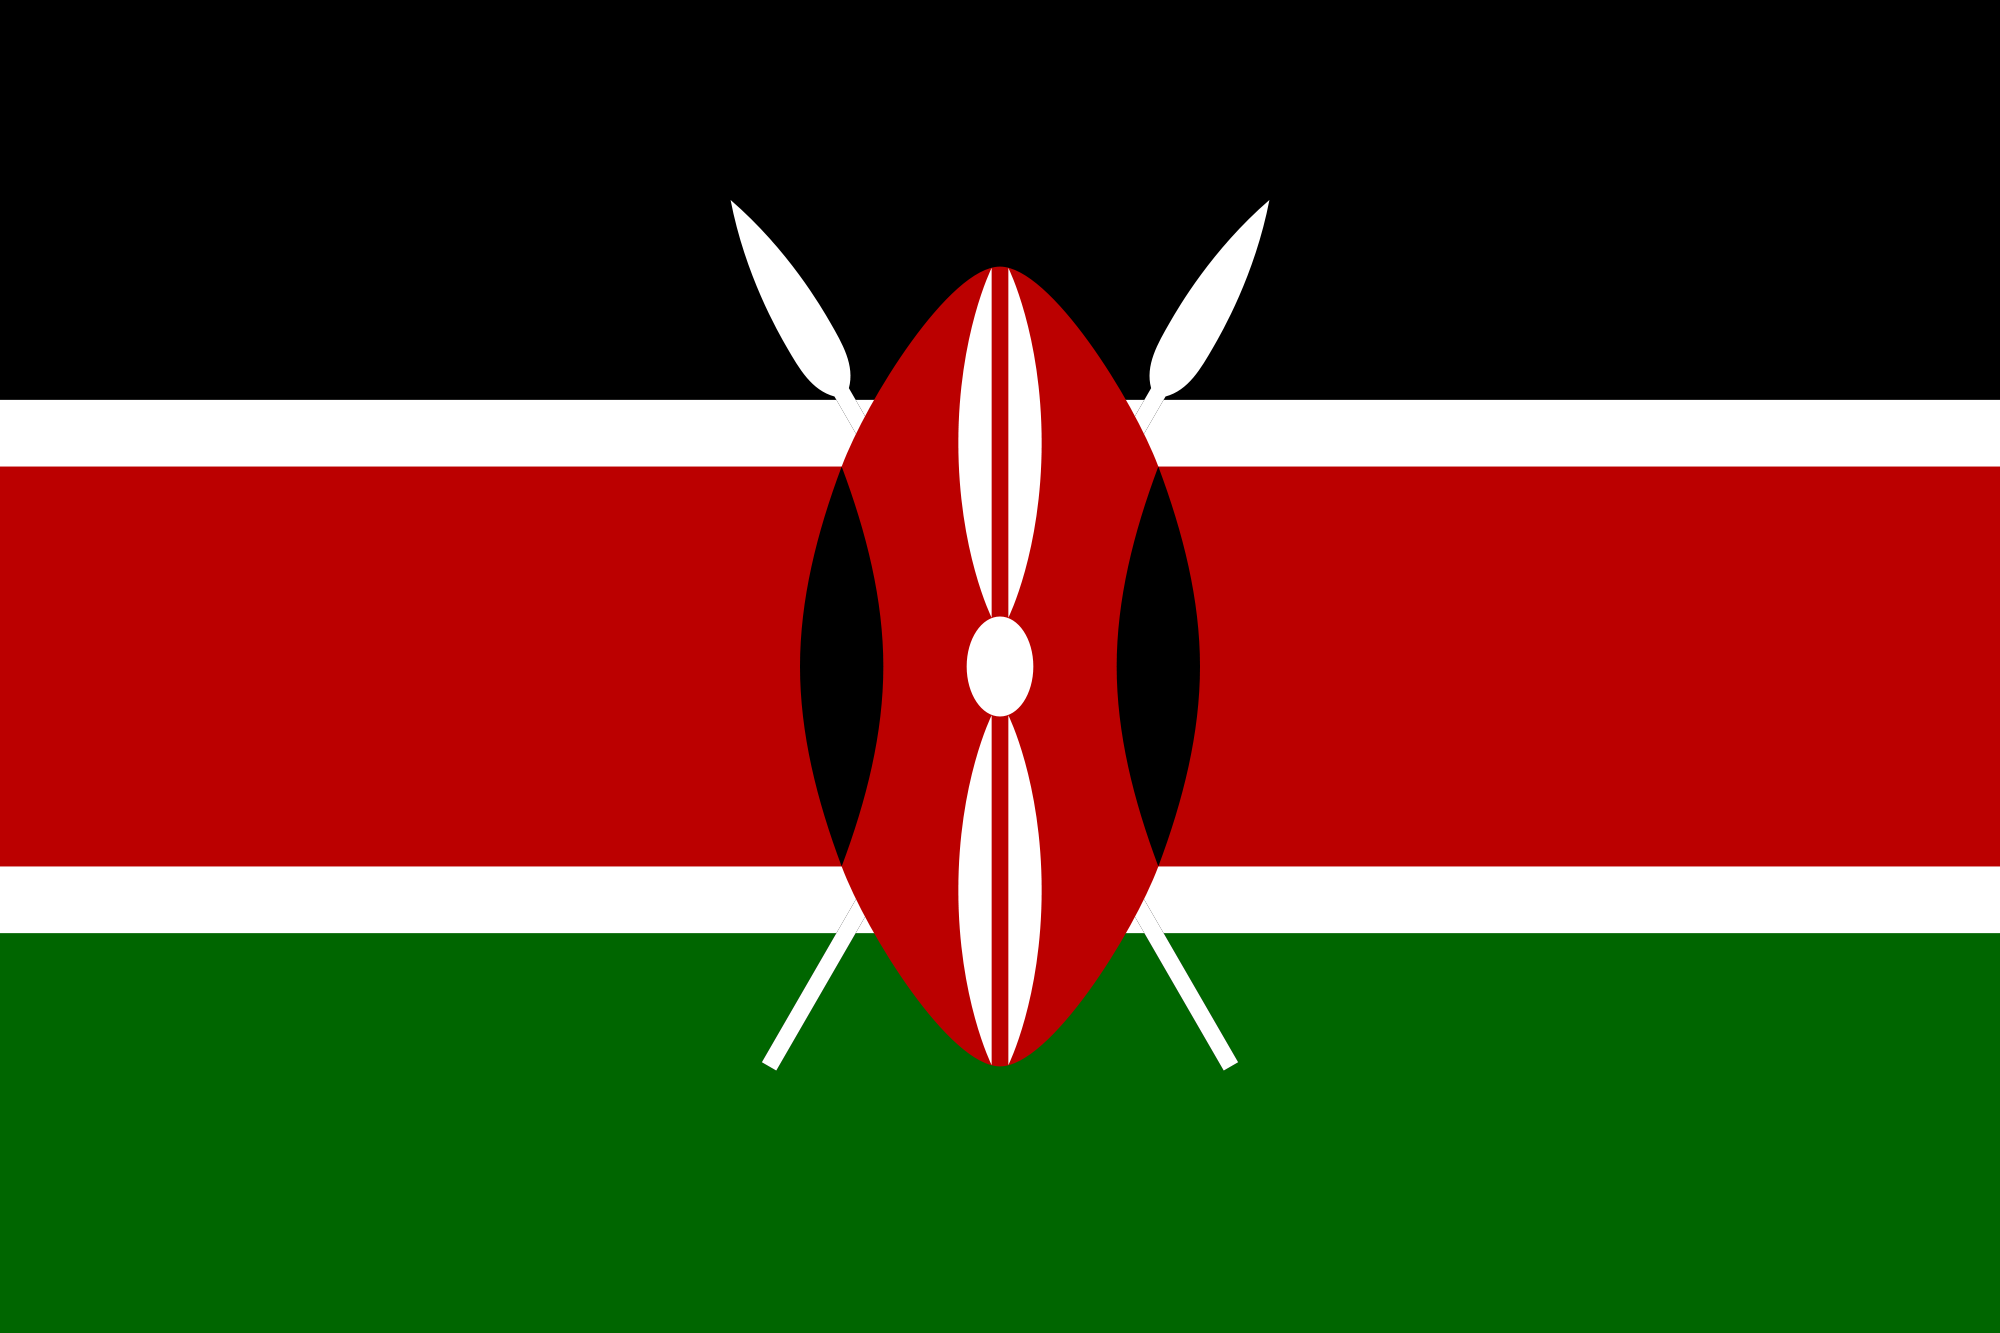 Flag of Kenya  Flags  Pinterest  Kenya and Flags